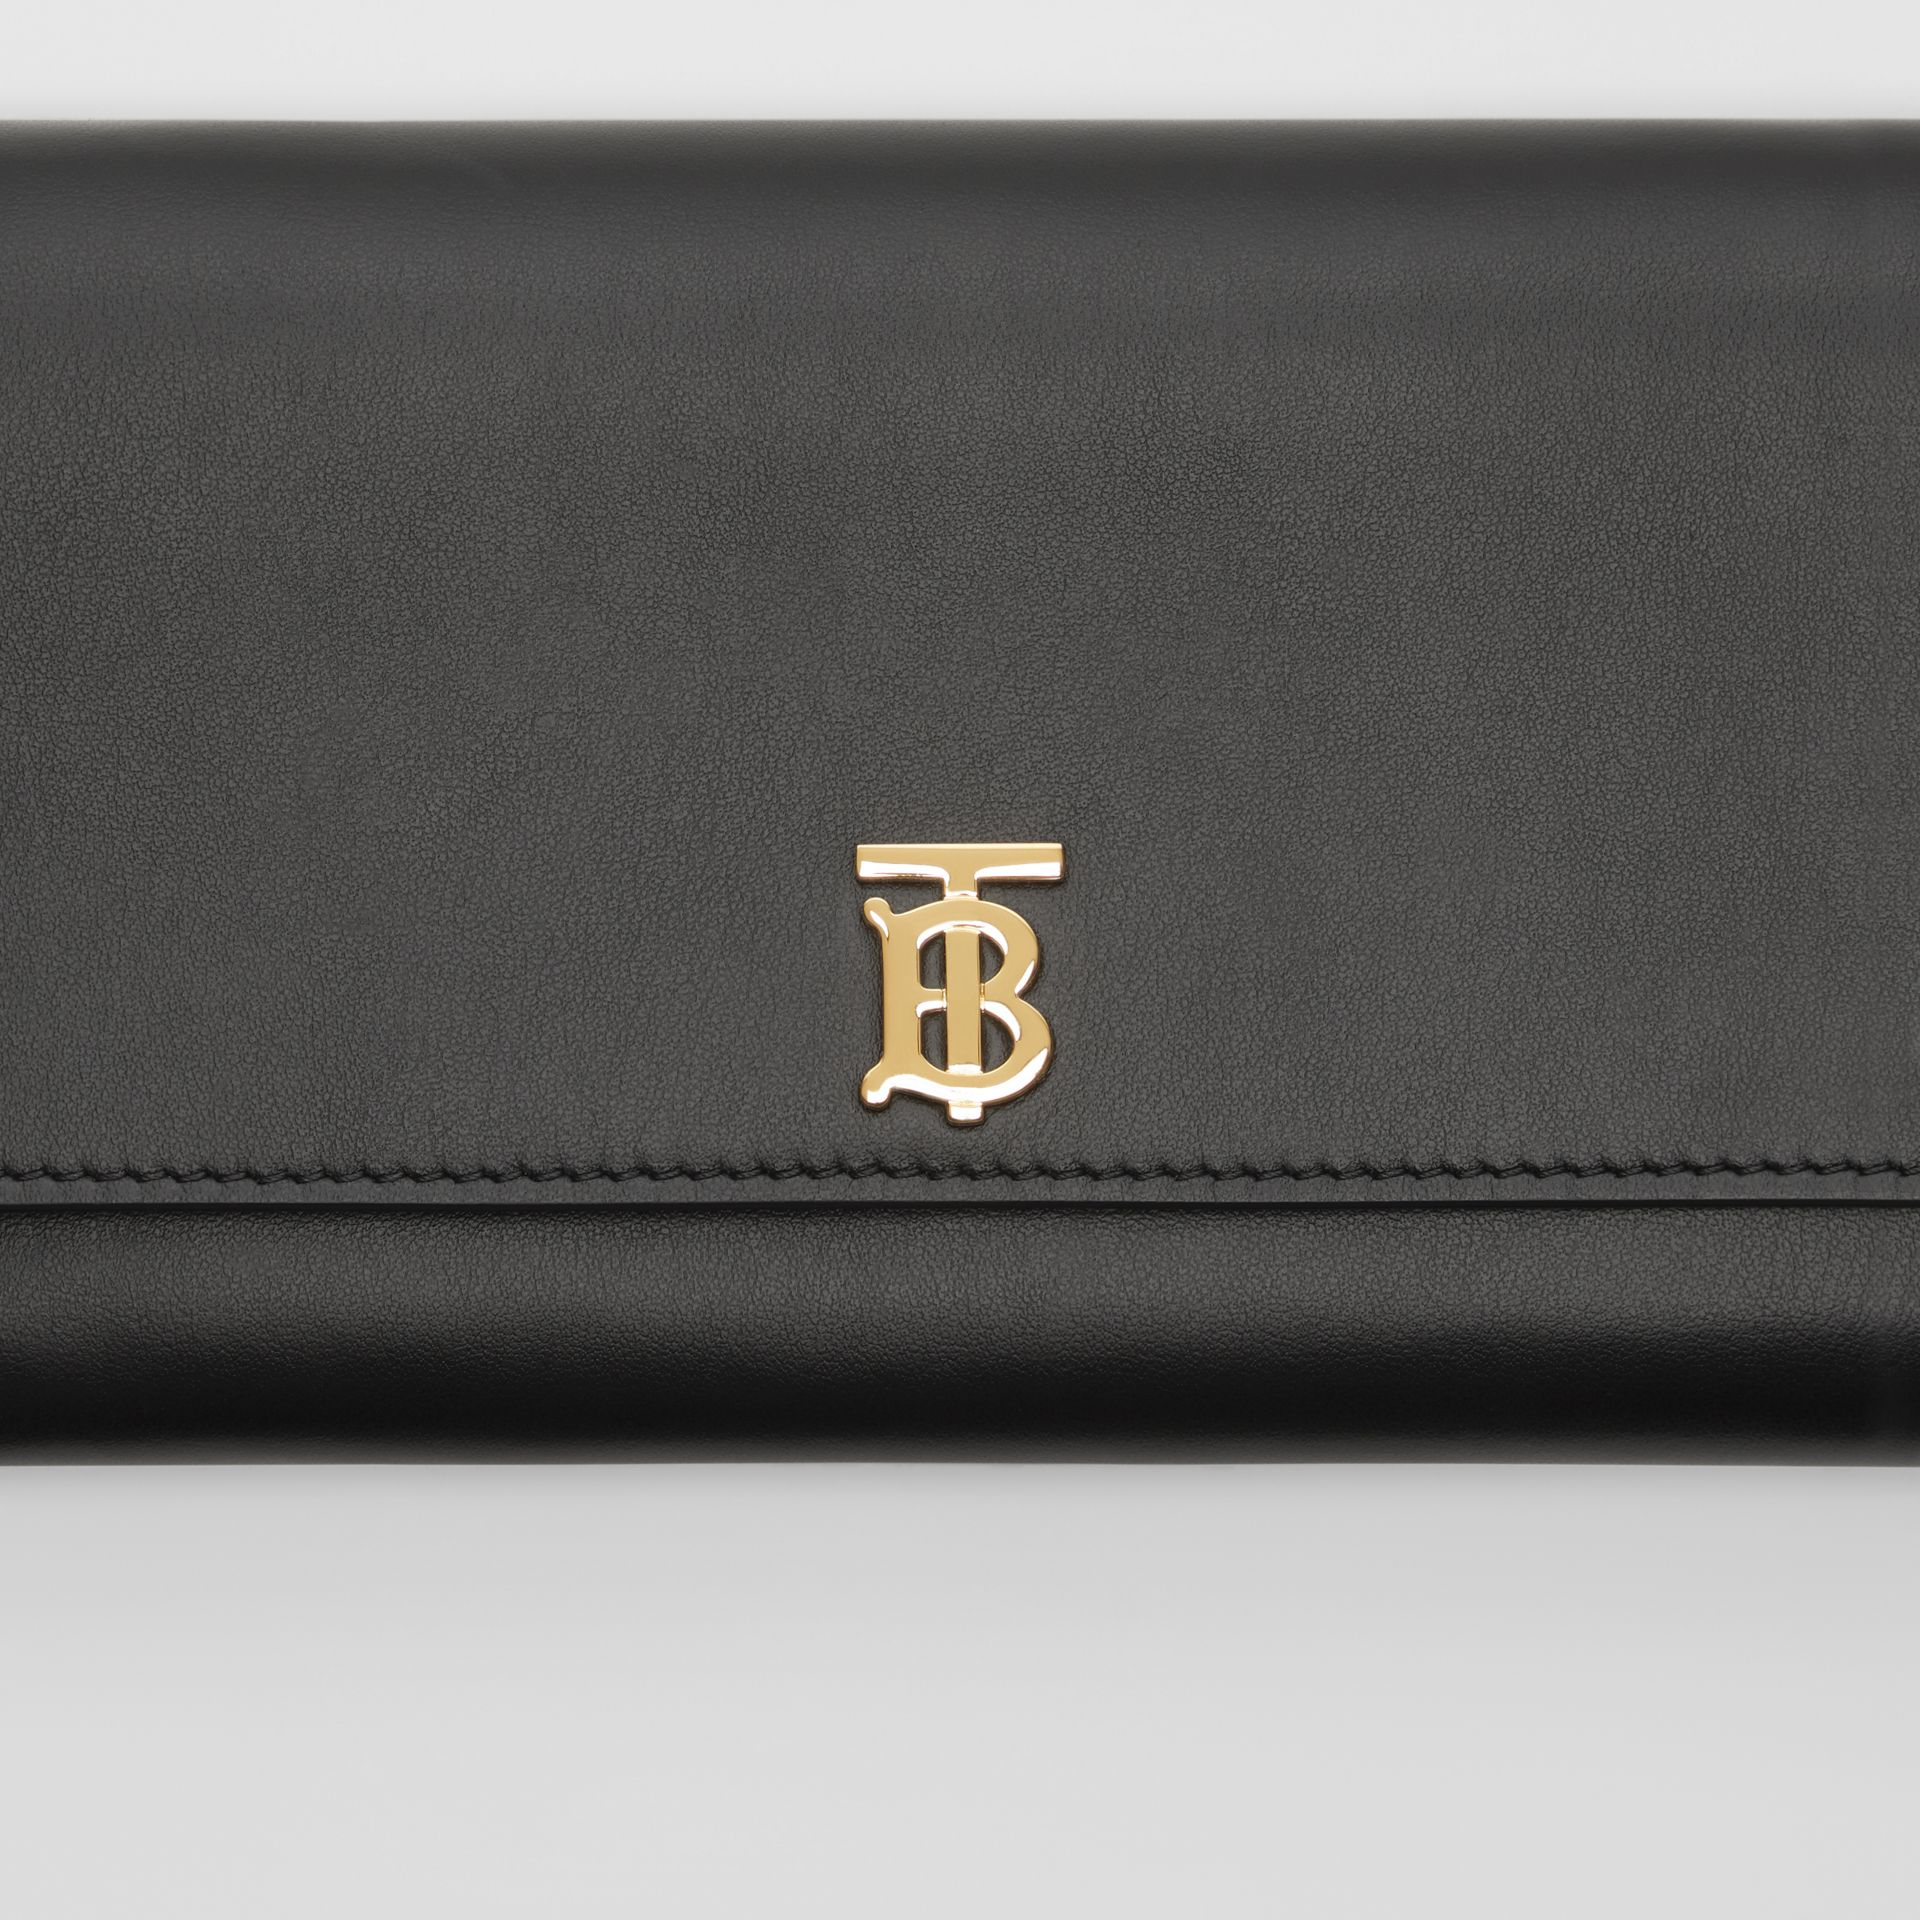 Monogram Motif Leather Wallet with Detachable Strap in Black - Women | Burberry Australia - gallery image 1